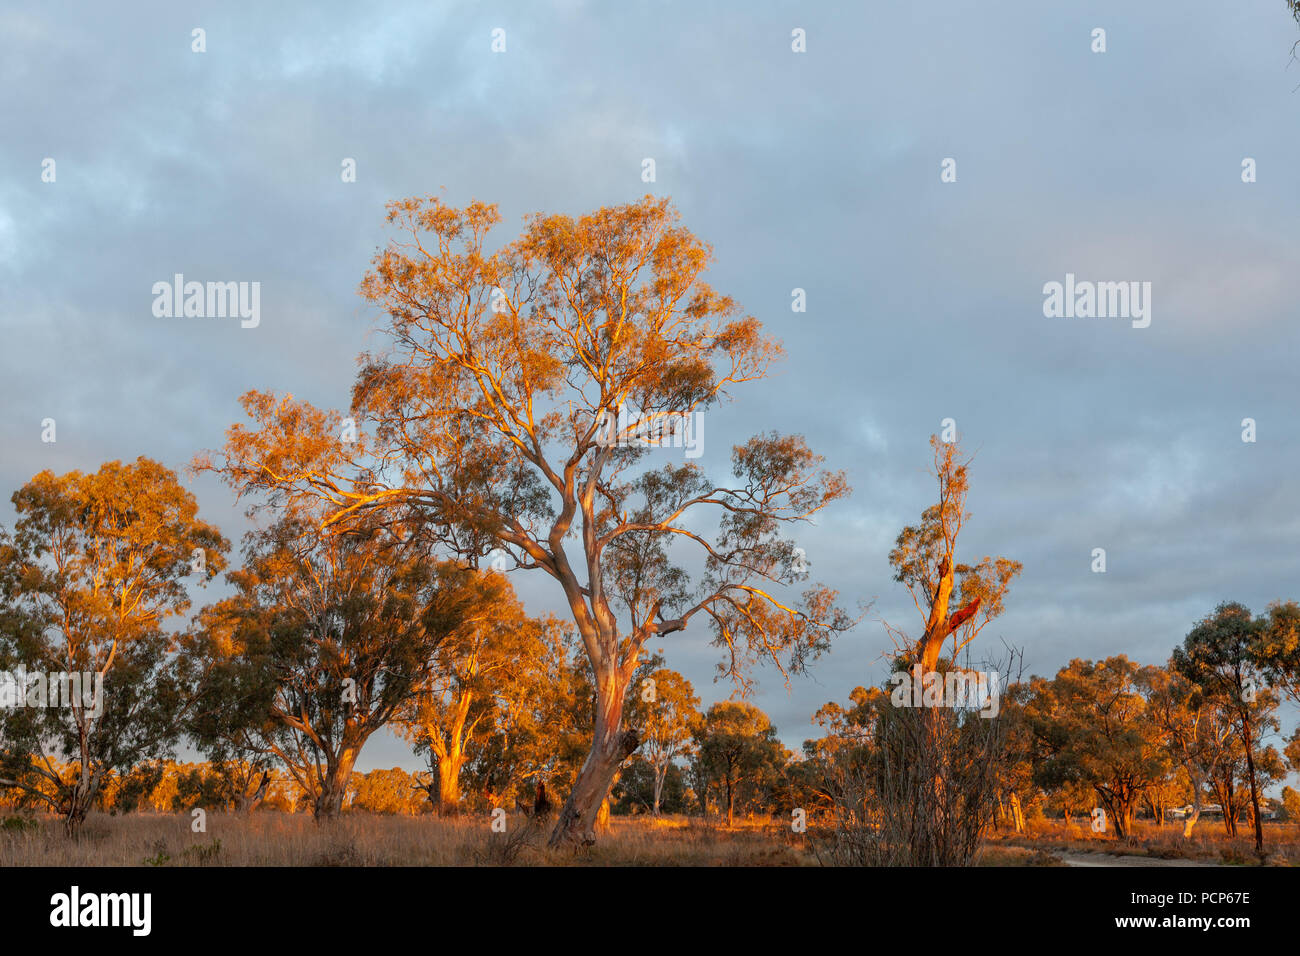 Red gum trees glowing in orange vivid sunset. Riverland, South Australia - Stock Image